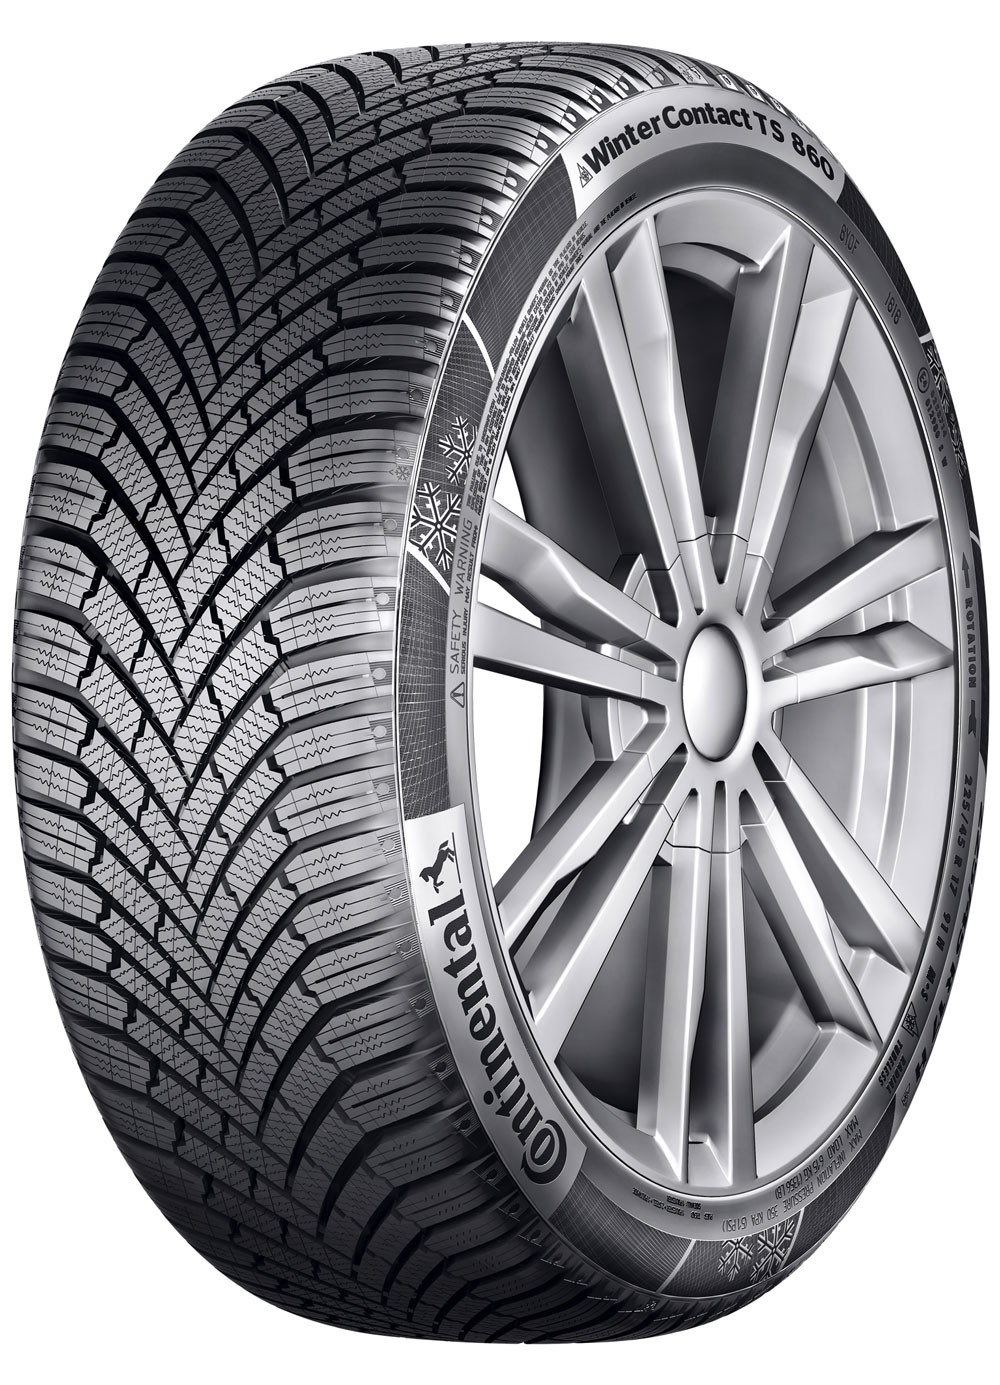 Anvelopa Iarna 195/65R15 91t CONTINENTAL Winter Contact Ts860